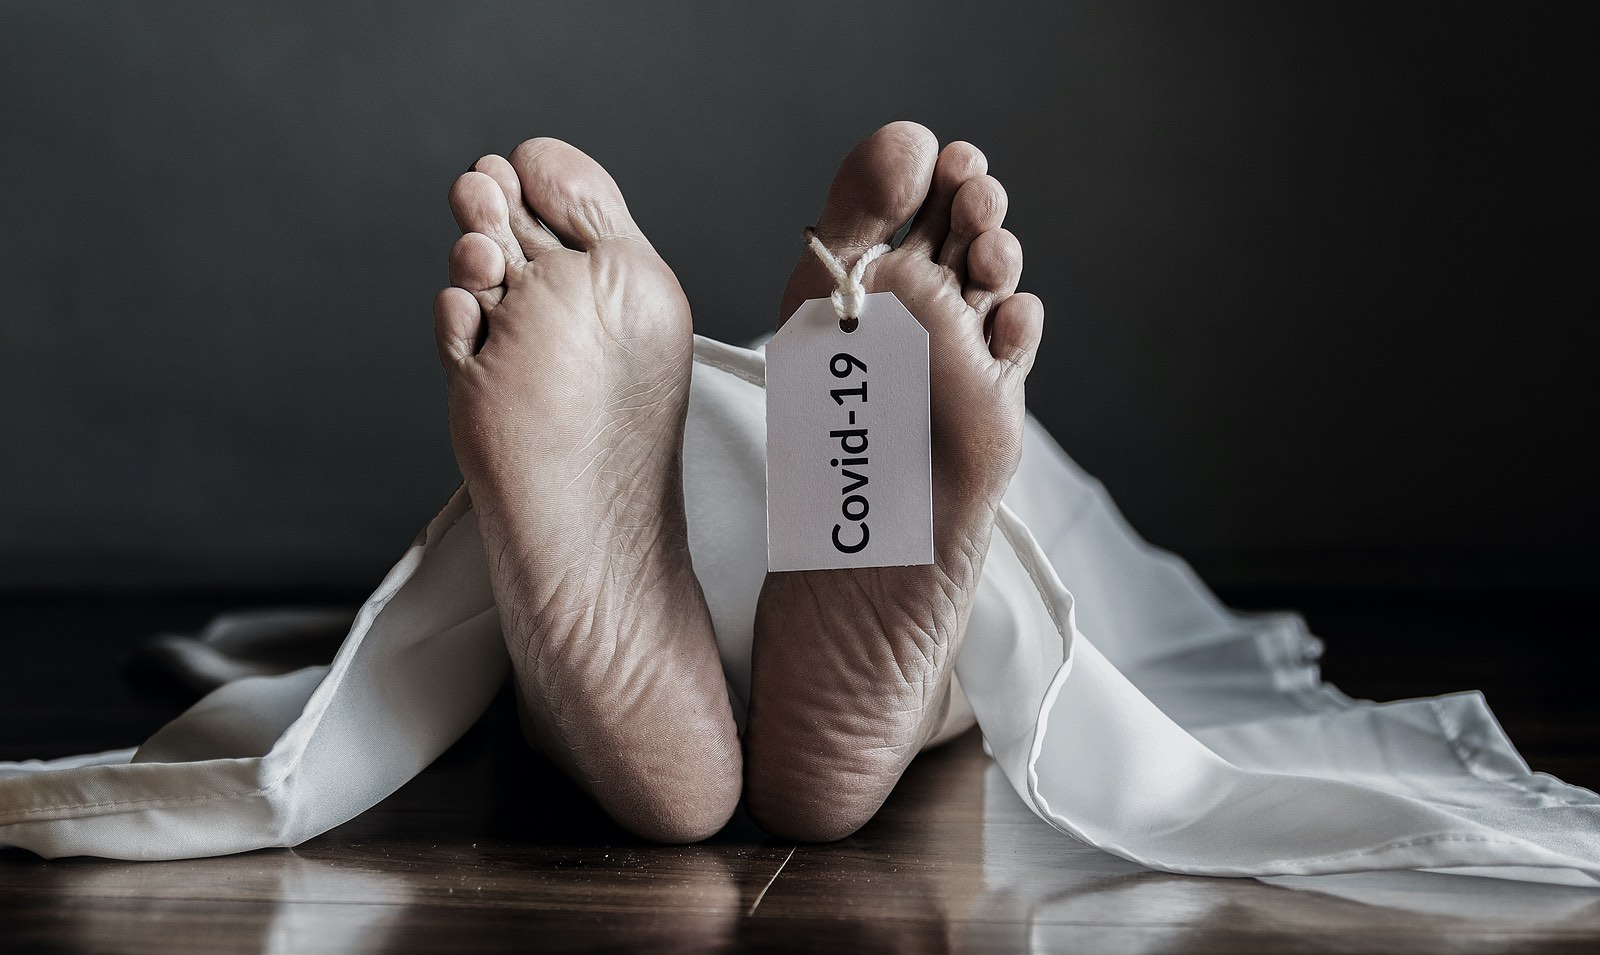 Dead body hanging tag Covid-19. senior people with coronavirus infected death at home, elderly people with congenital disease are at a higher risk of infected covid-19 disease.